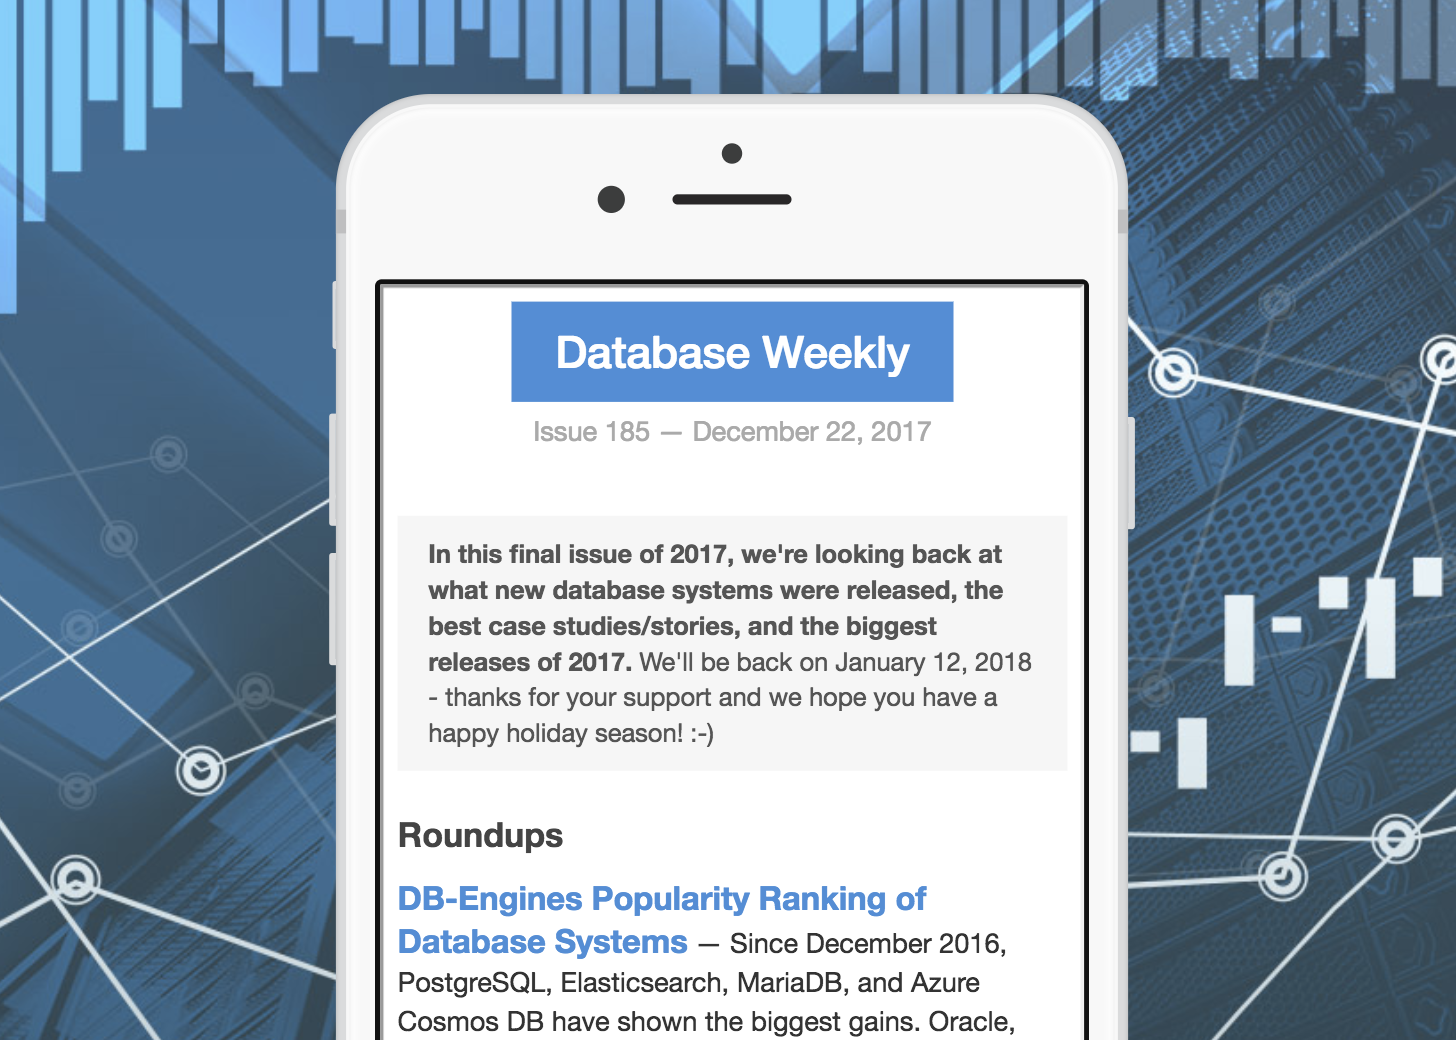 A Look at Ten New Database Systems Released in 2017 - By Peter Cooper